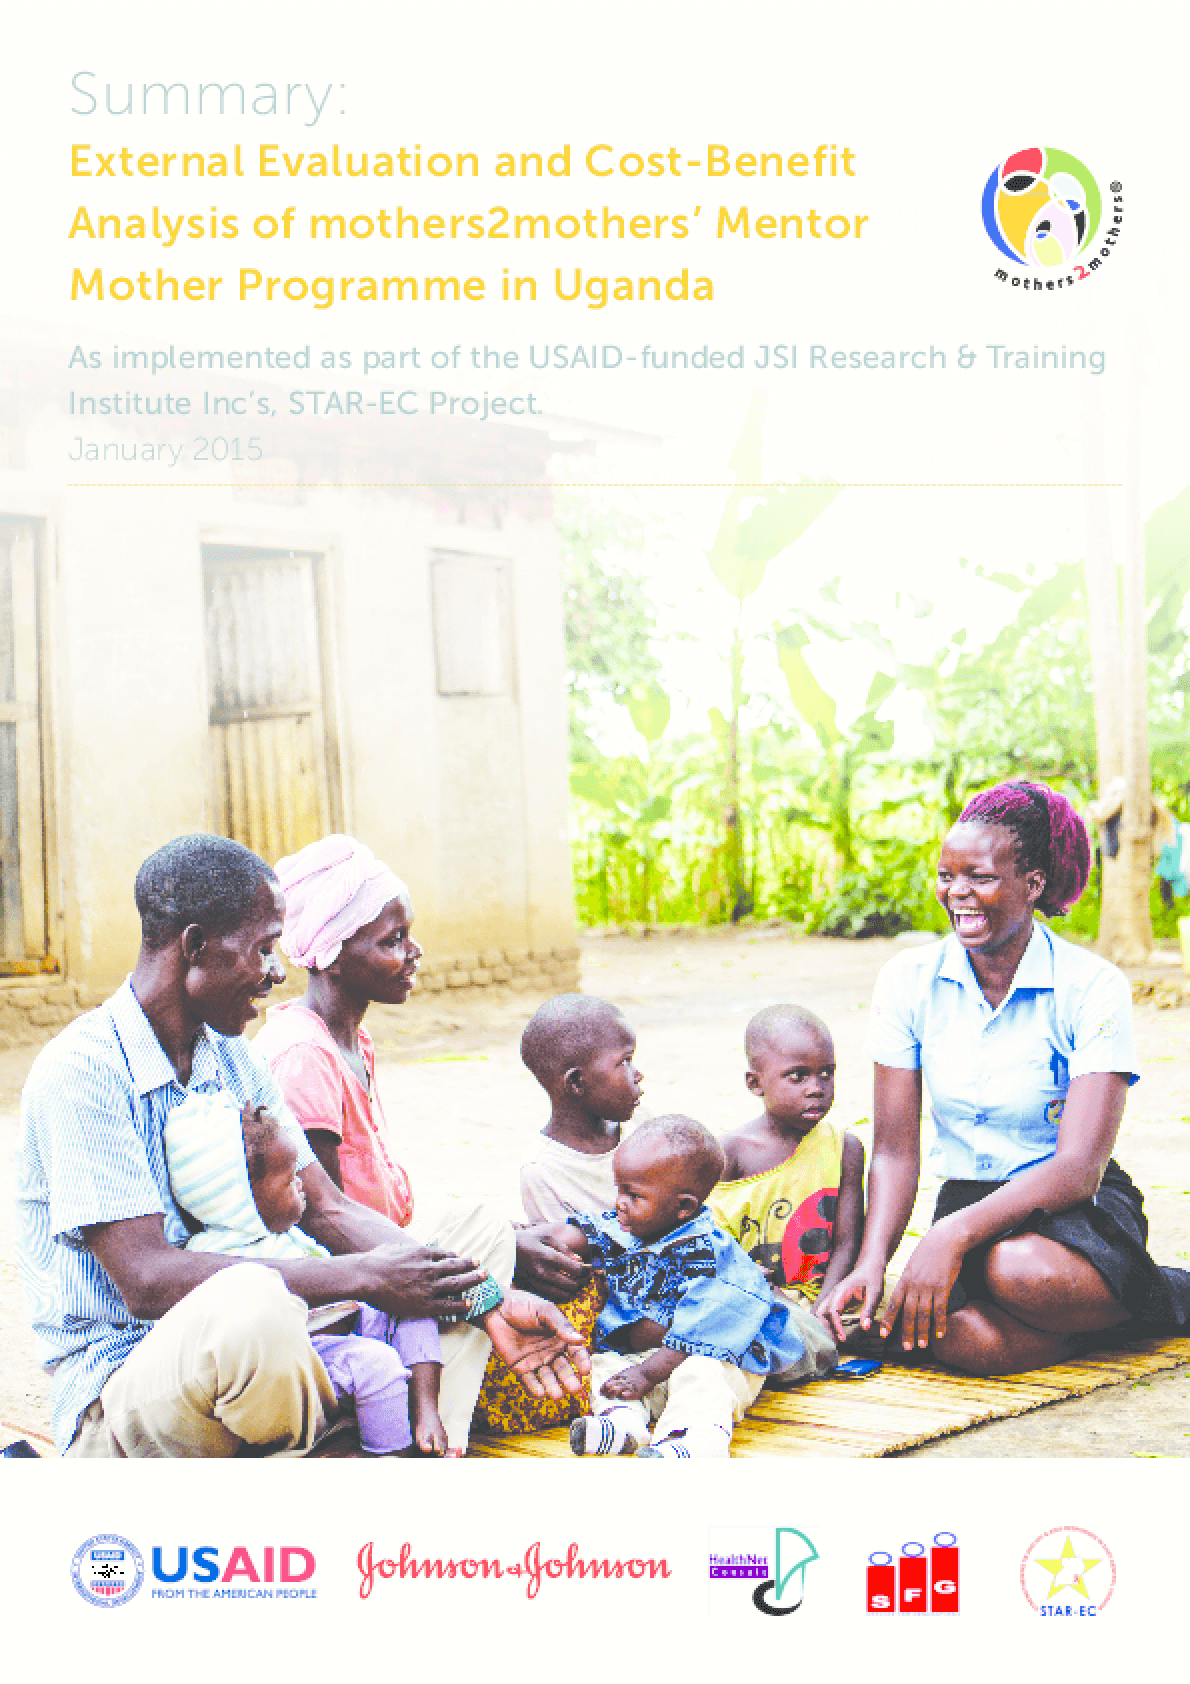 External Evaluation and Cost-Benefit Analysis of mothers2mothers' Mentor Mother Programme in Uganda